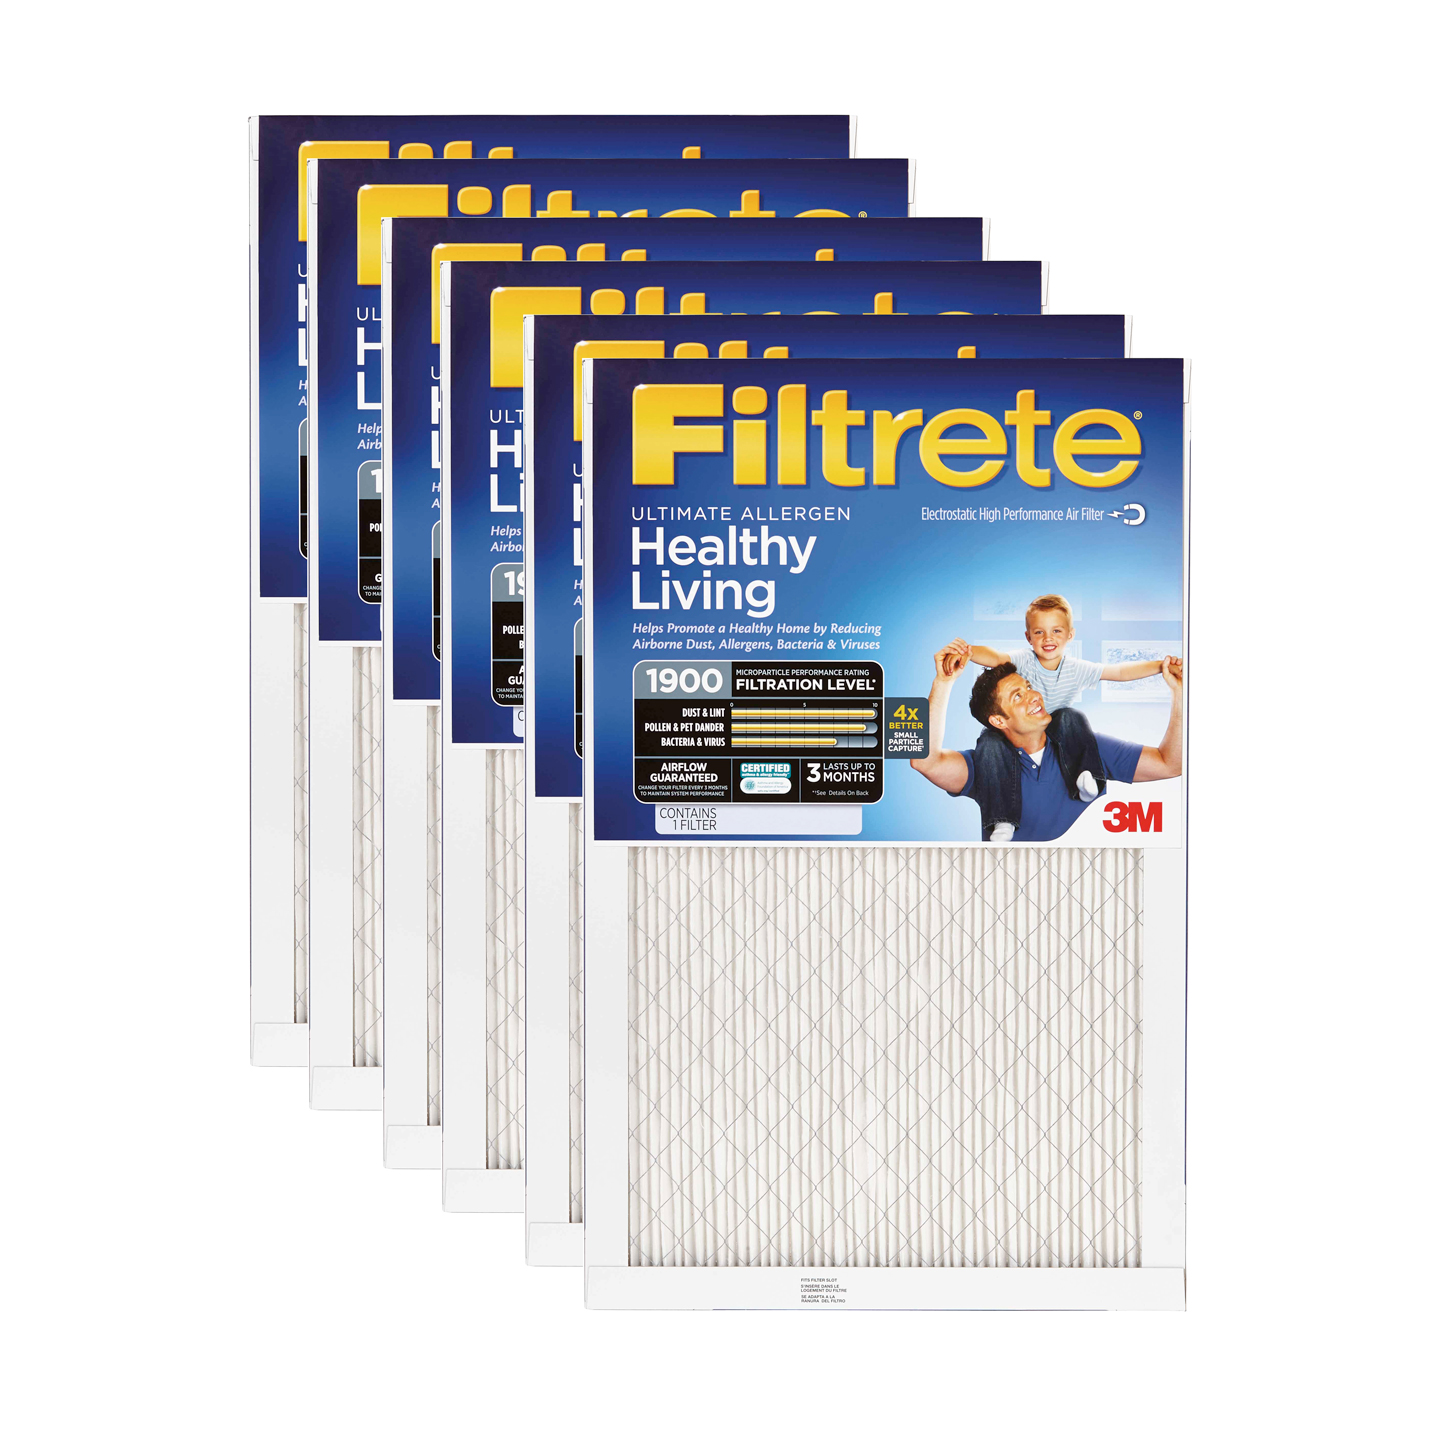 Filtrete 1900 Ultimate Allergen Healthy Living Filter - 10x20x1 (6-Pack) FILTRETE_ULTIMATE_BLUE_10x20x1_6_PACK